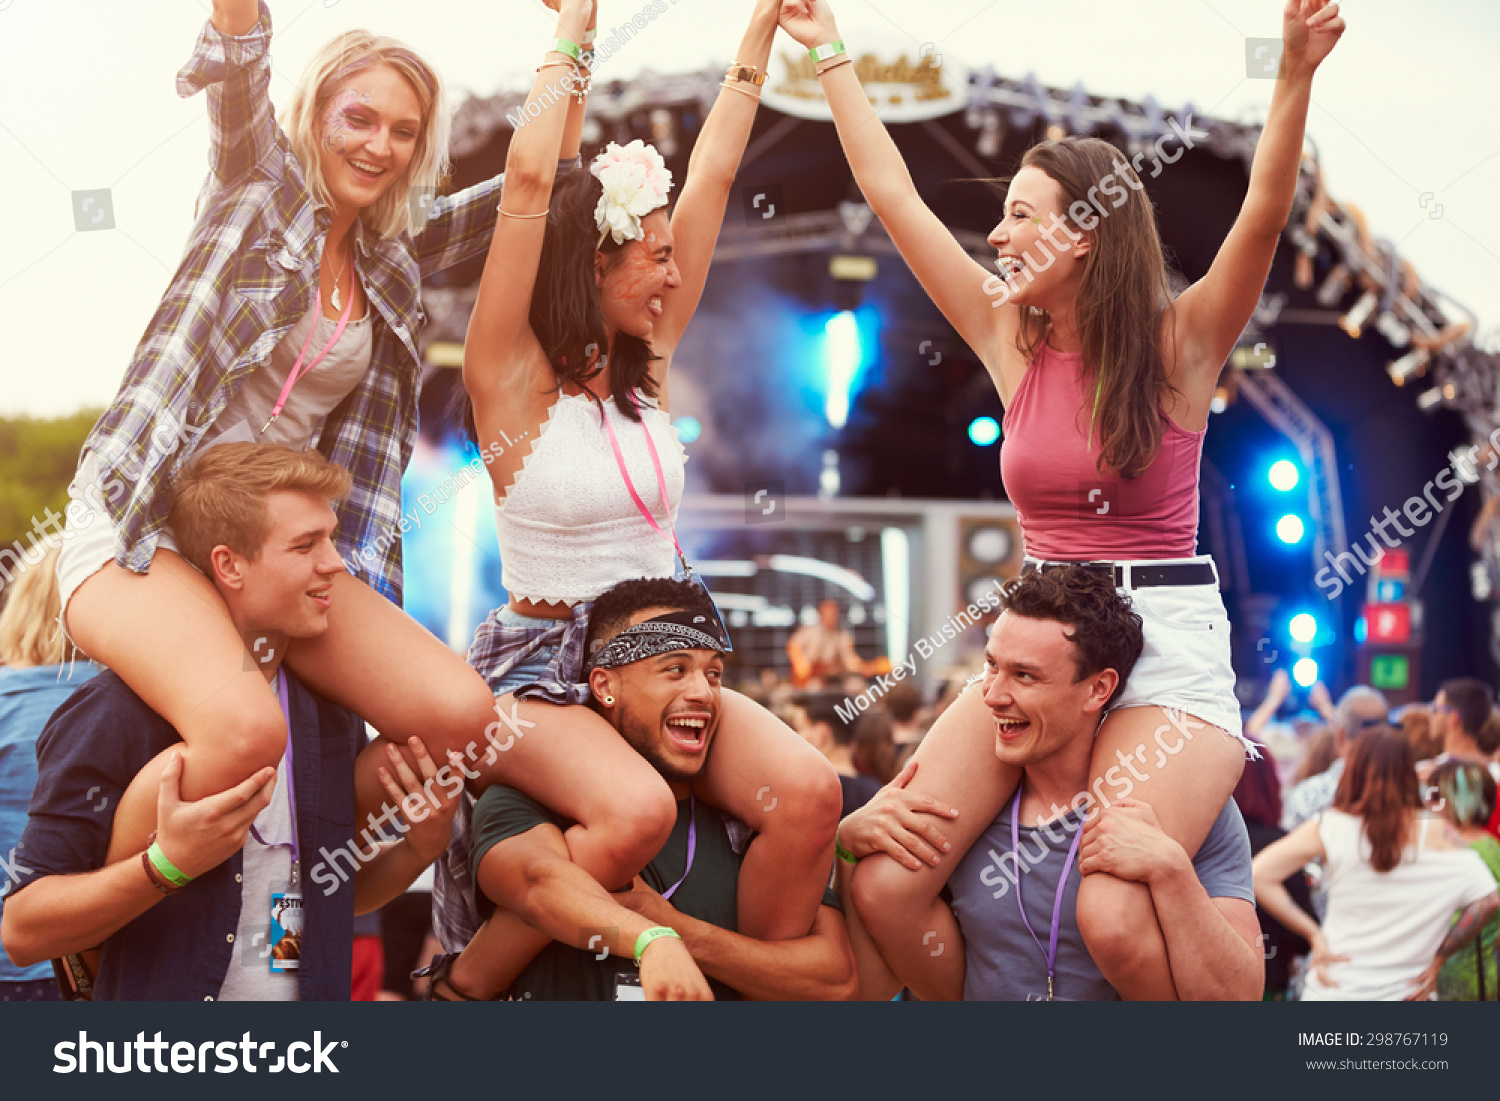 Friends having fun in the crowd at a music festival #298767119